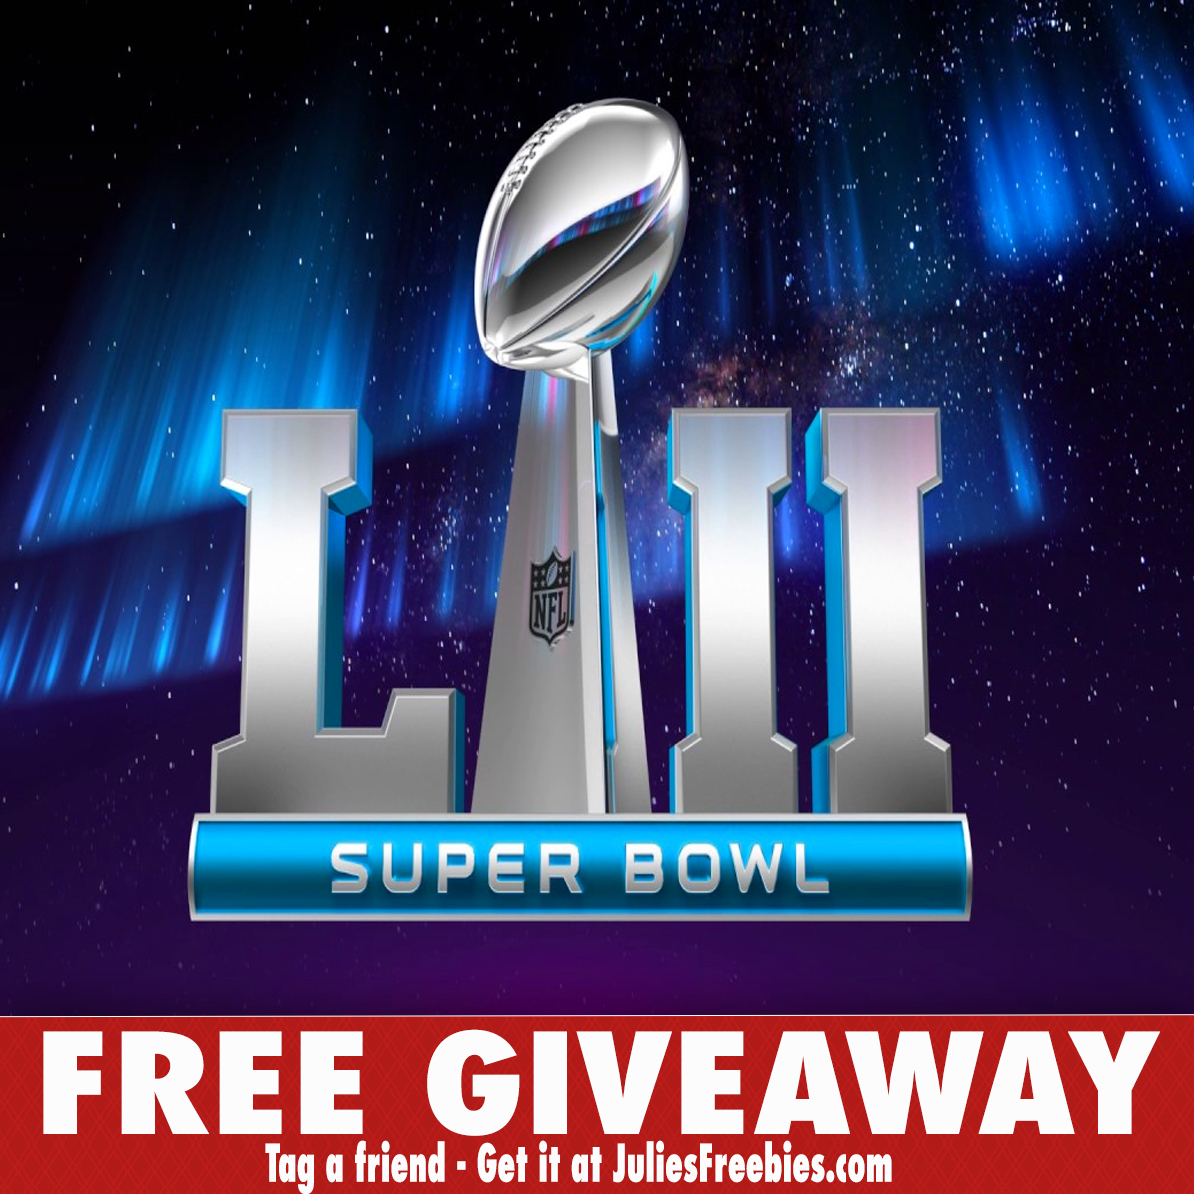 Instant Win Games Archives - Page 5 of 51 - Julie's Freebies